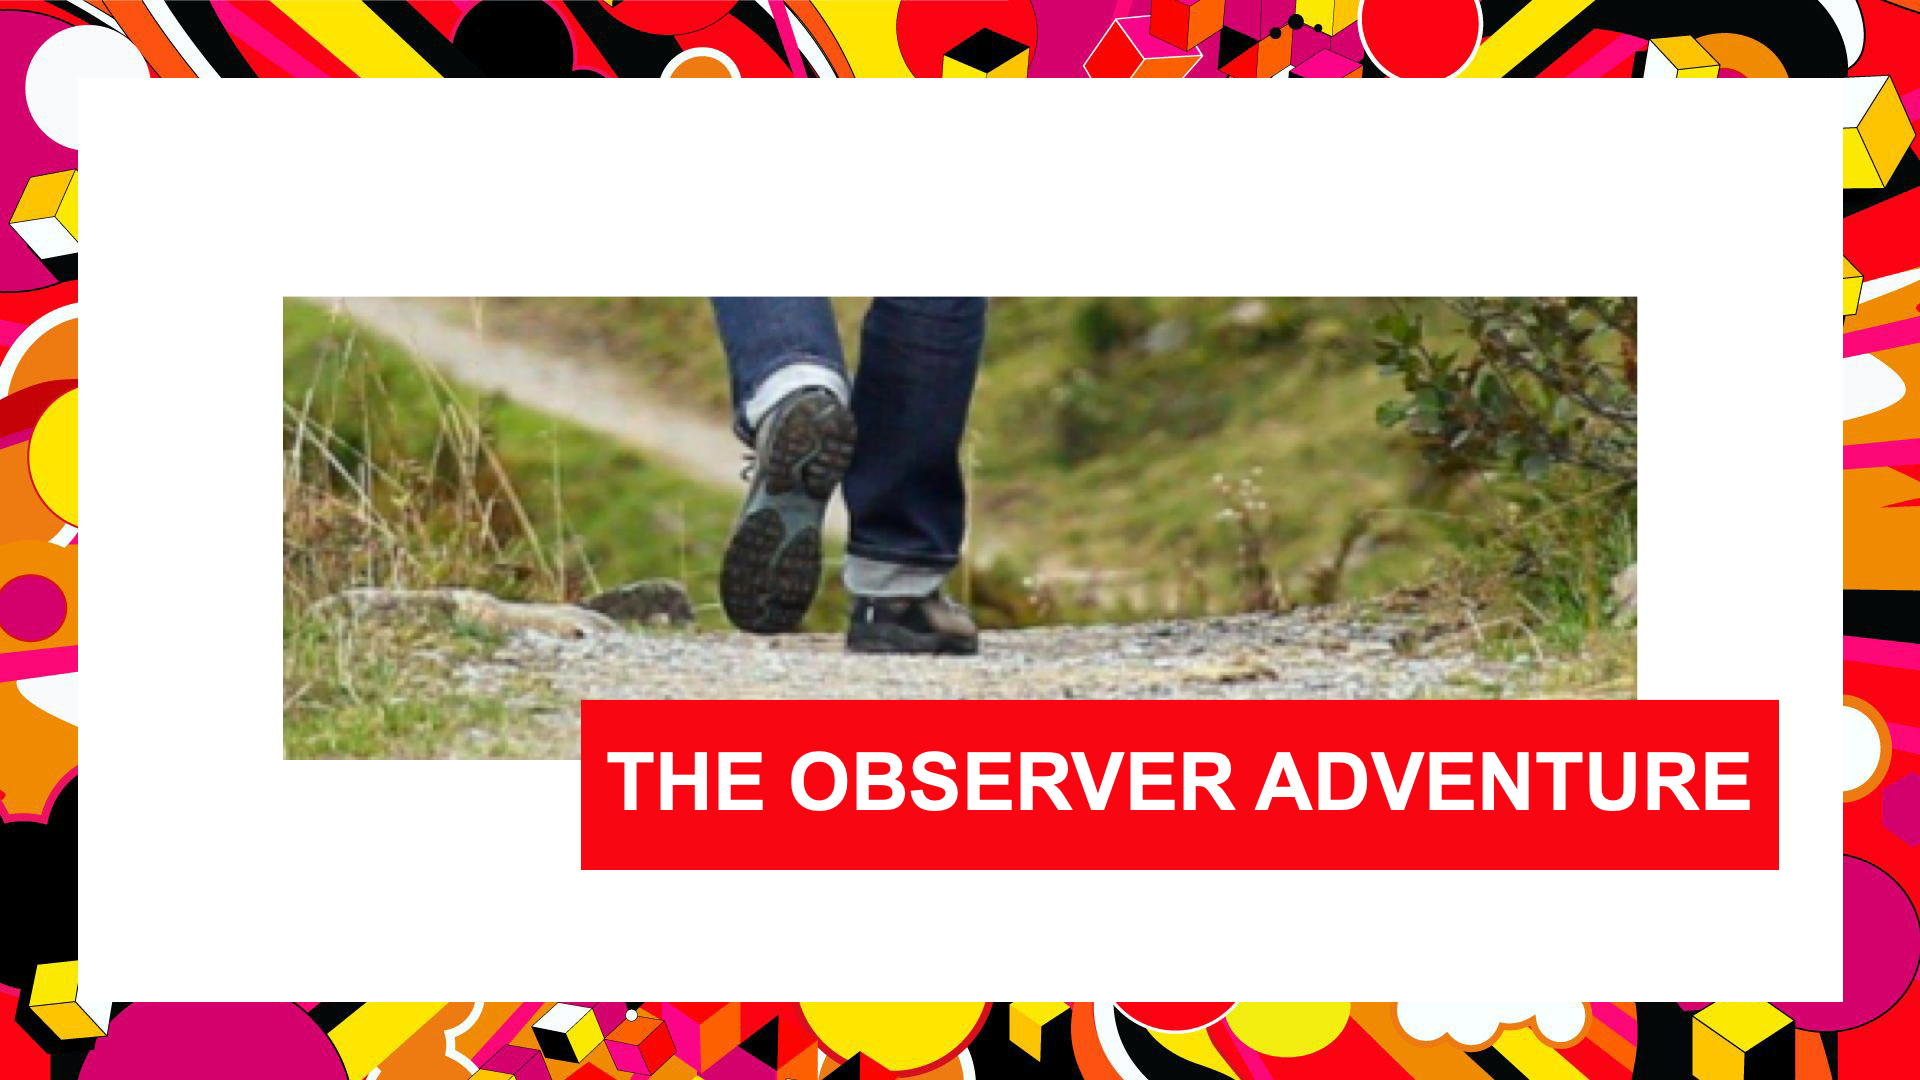 Finding-Your-Way-The-Observer-Adventure